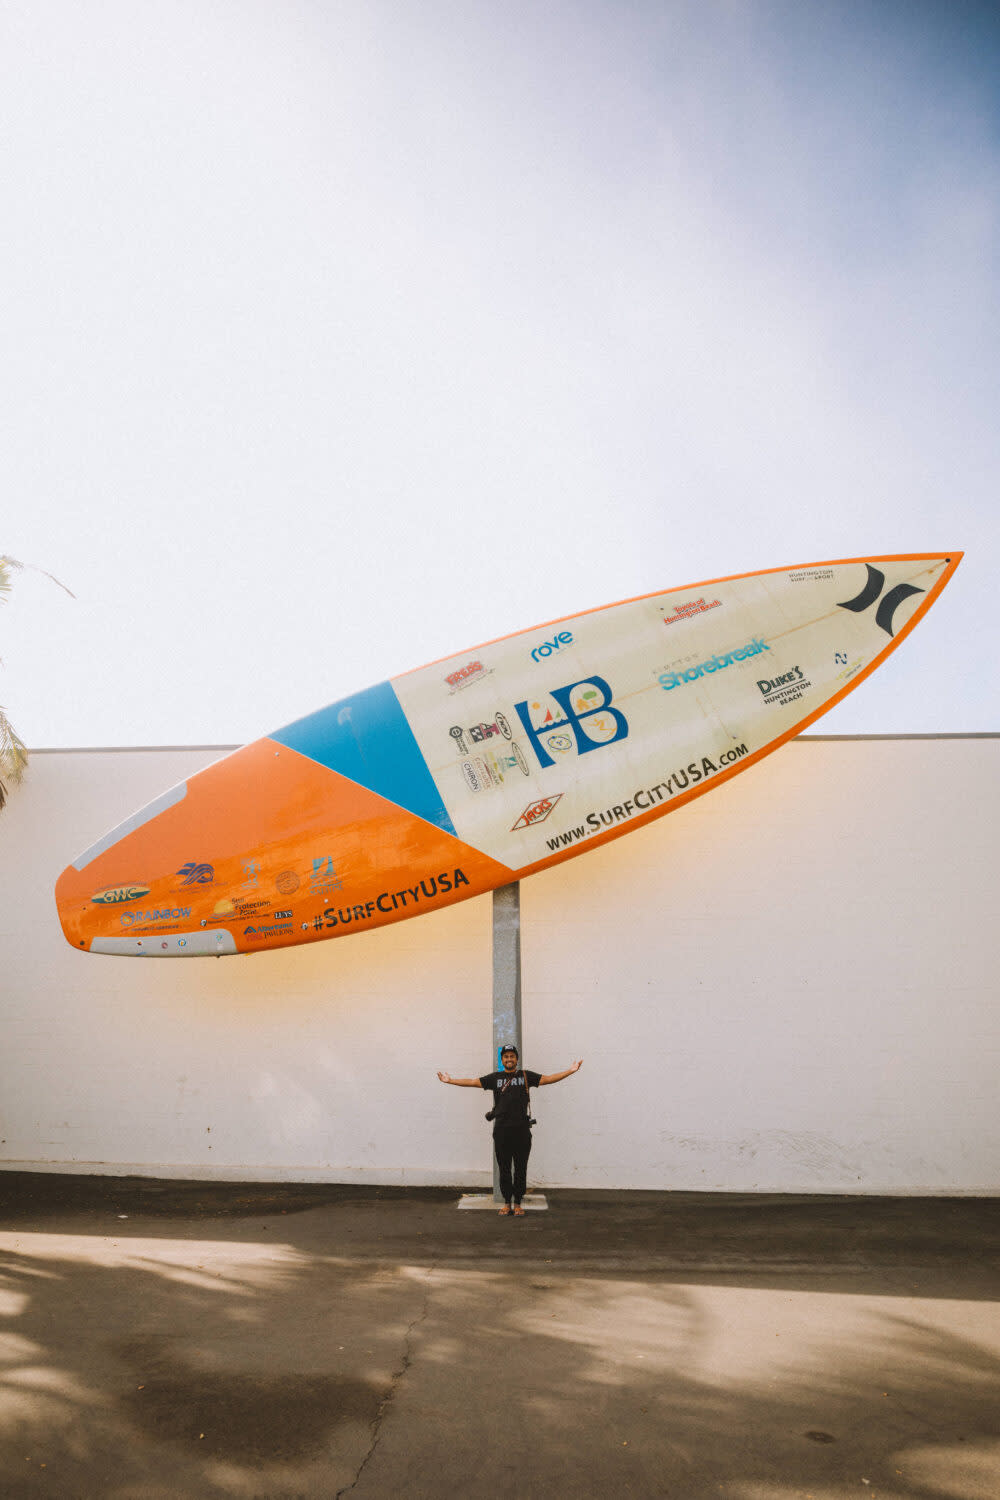 World's Largest Surfboard at Huntington Beach